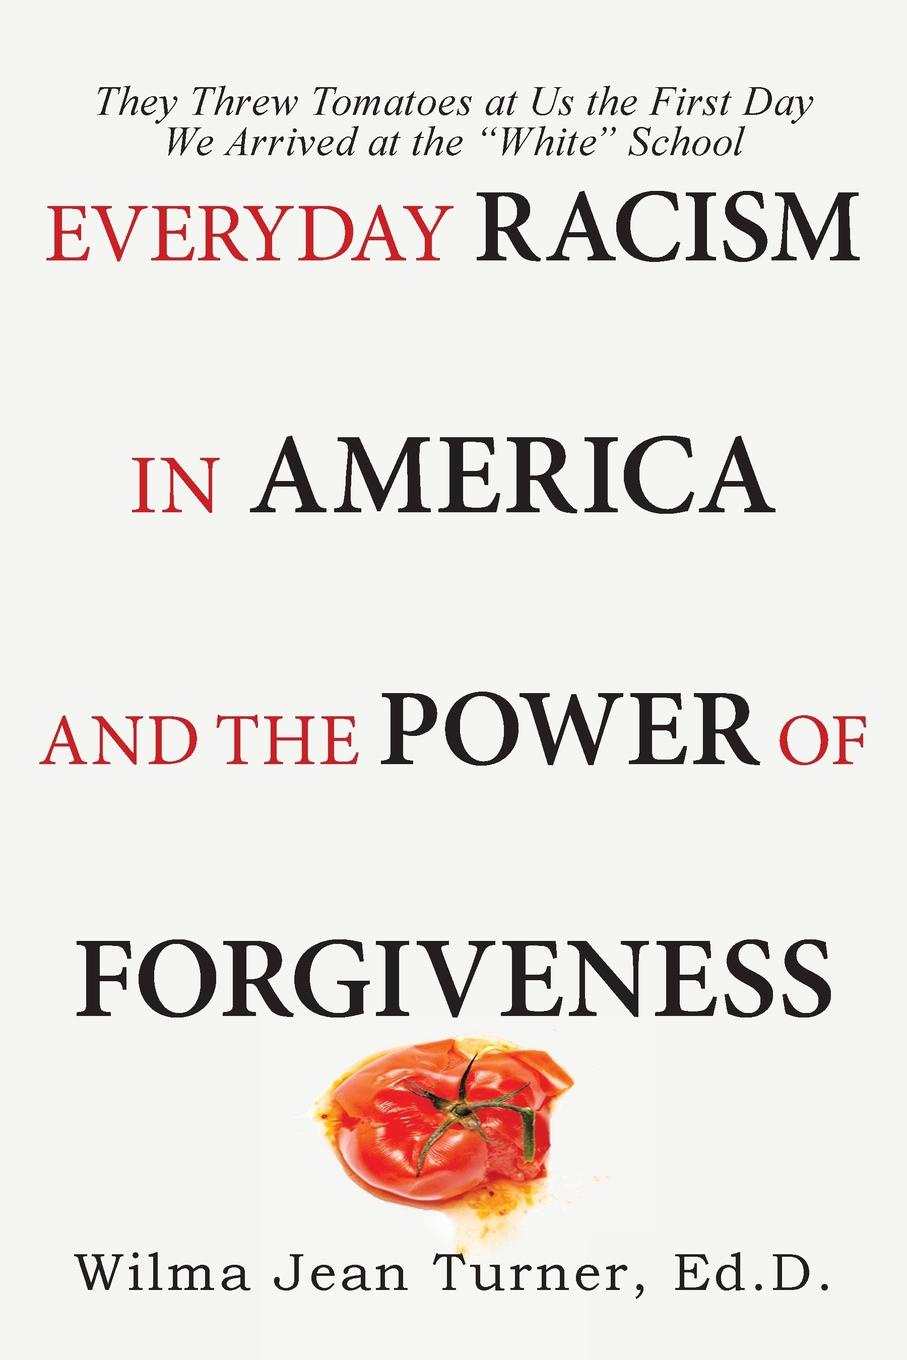 Wilma Jean Turner Ed.D. Everyday Racism in America and the Power of Forgiveness ten commandments of working in a hostile environment